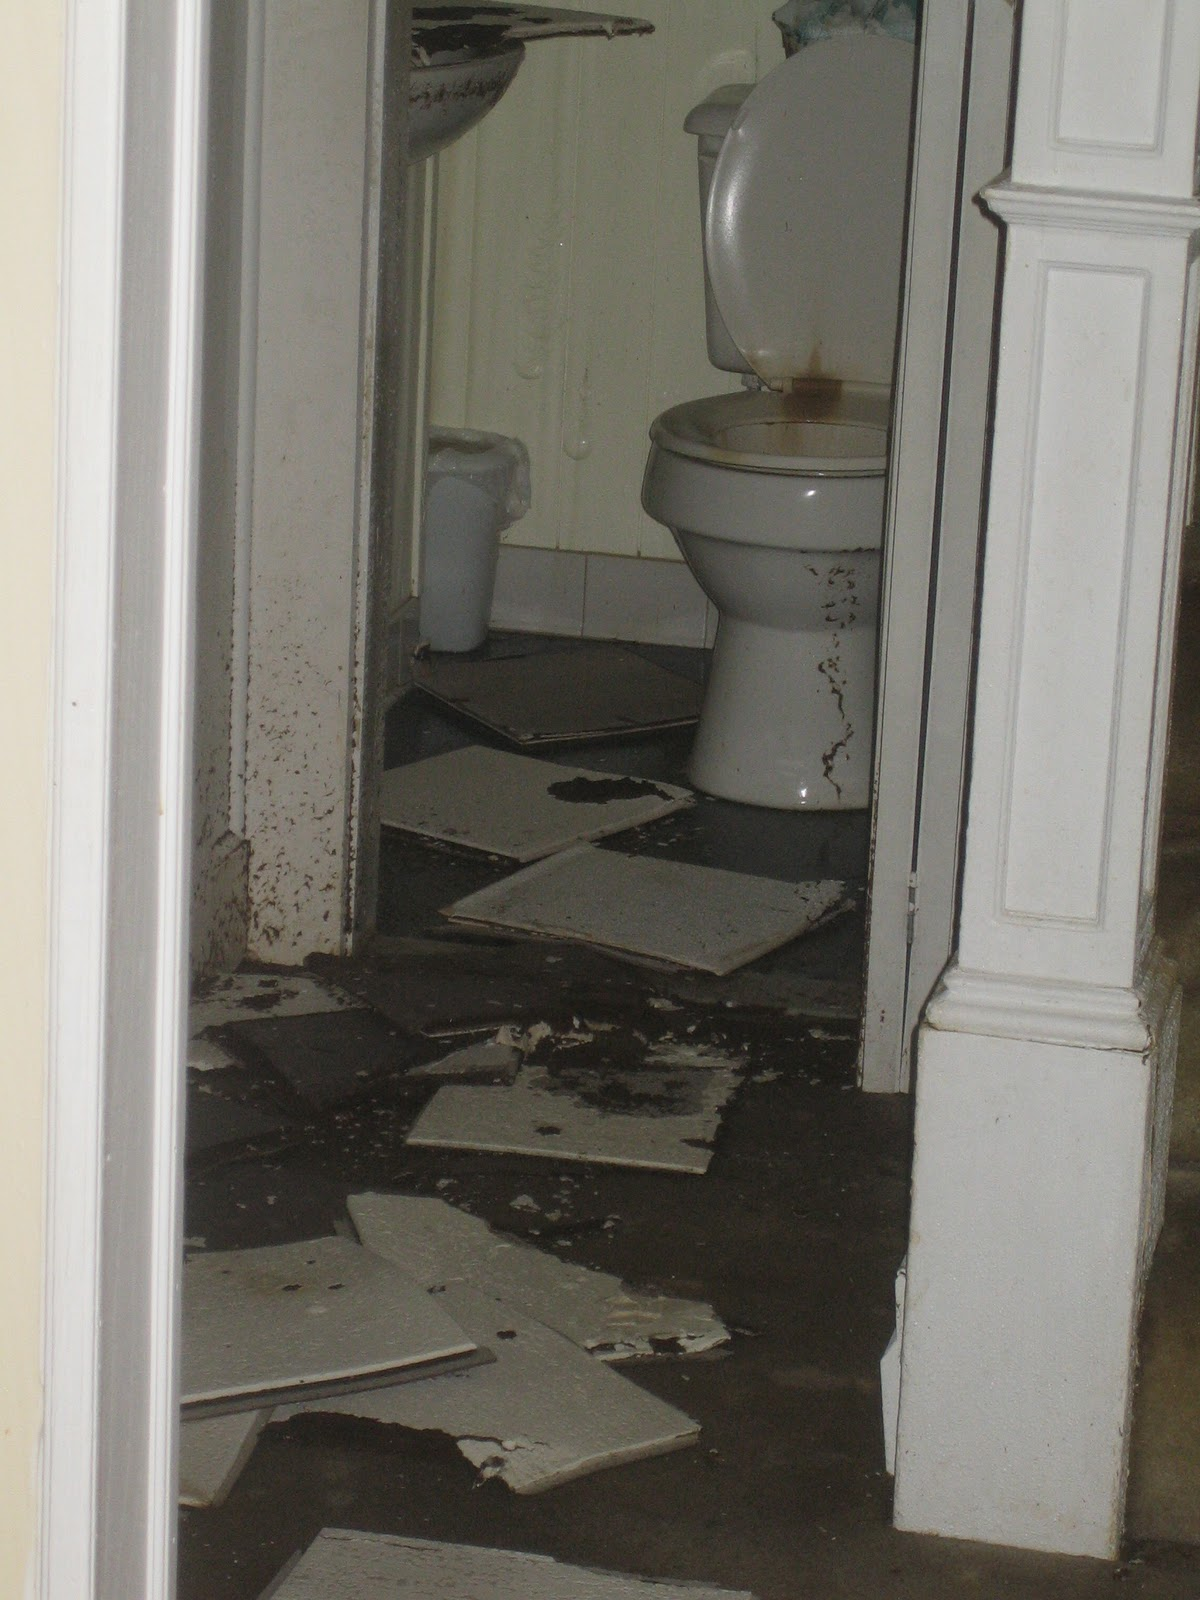 Bathroom Below Flooded By Burst Pipe Upstairs